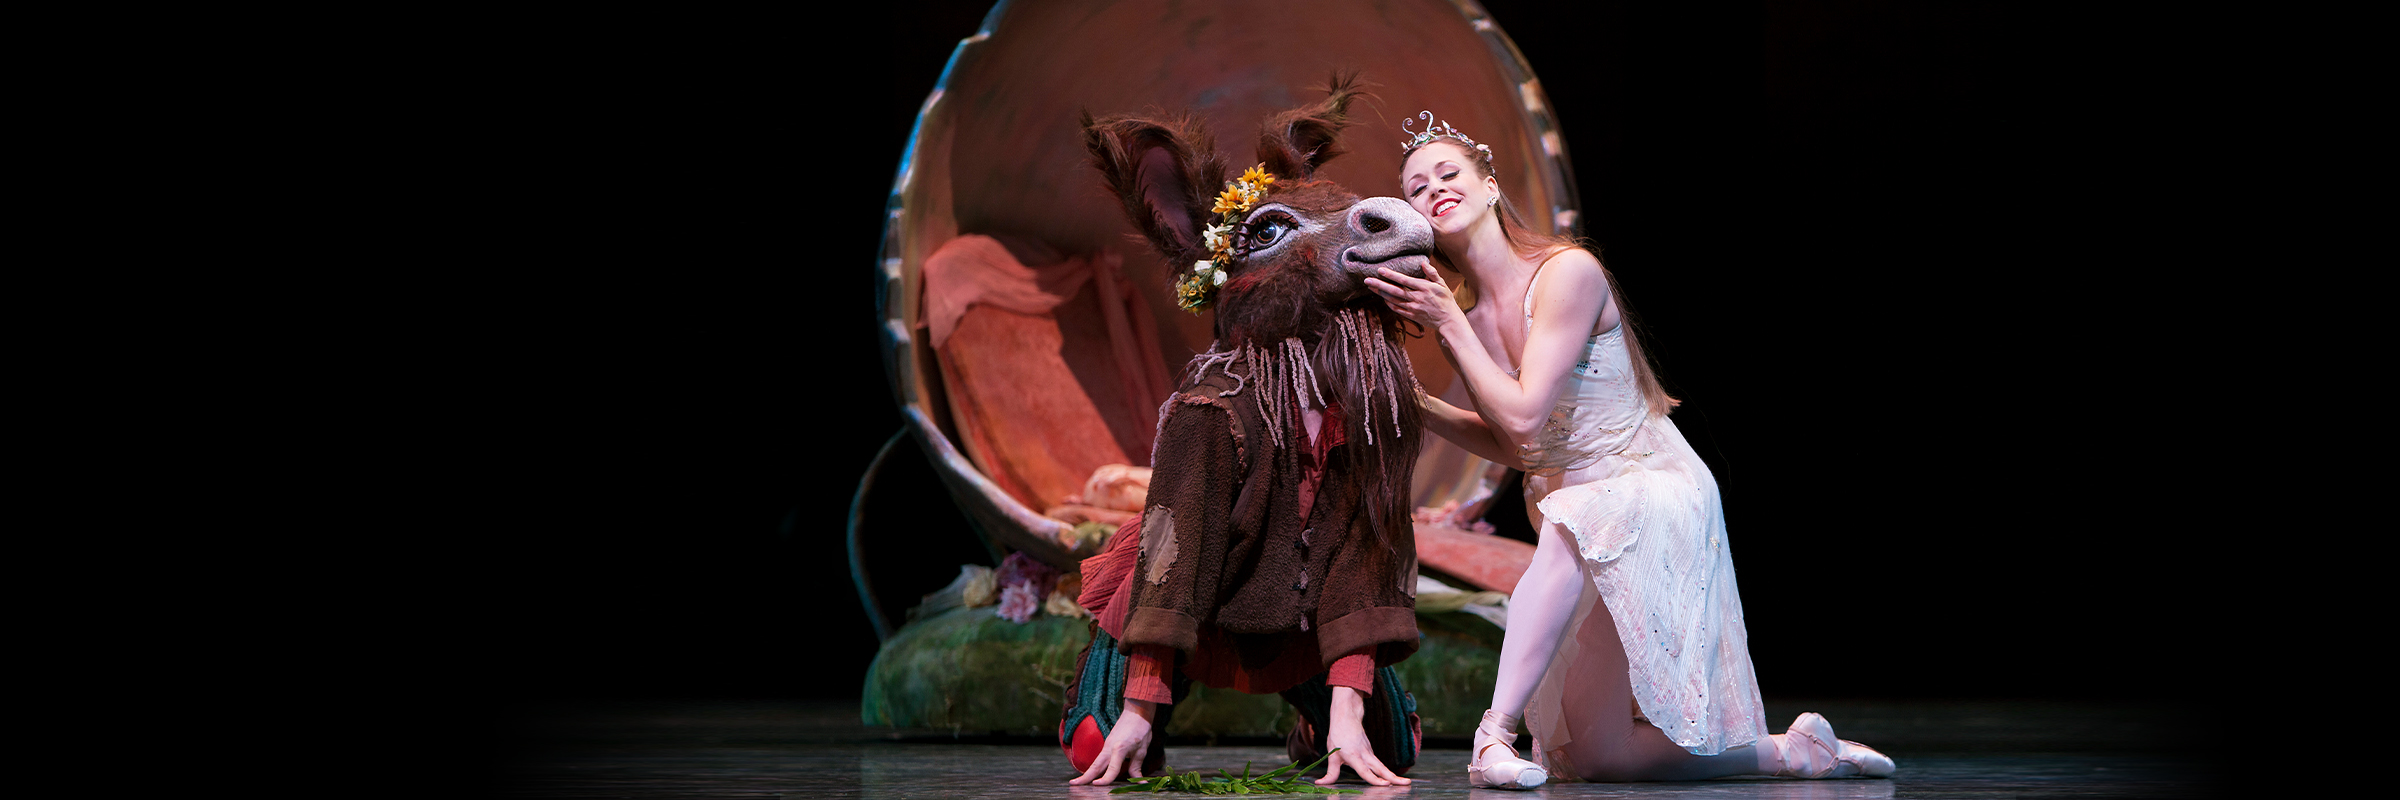 Pacific Northwest Ballet's Lesley Rausch and Ezra Thomson in Balanchine's A Midsummer Night's Dream. (© Angela Sterling)